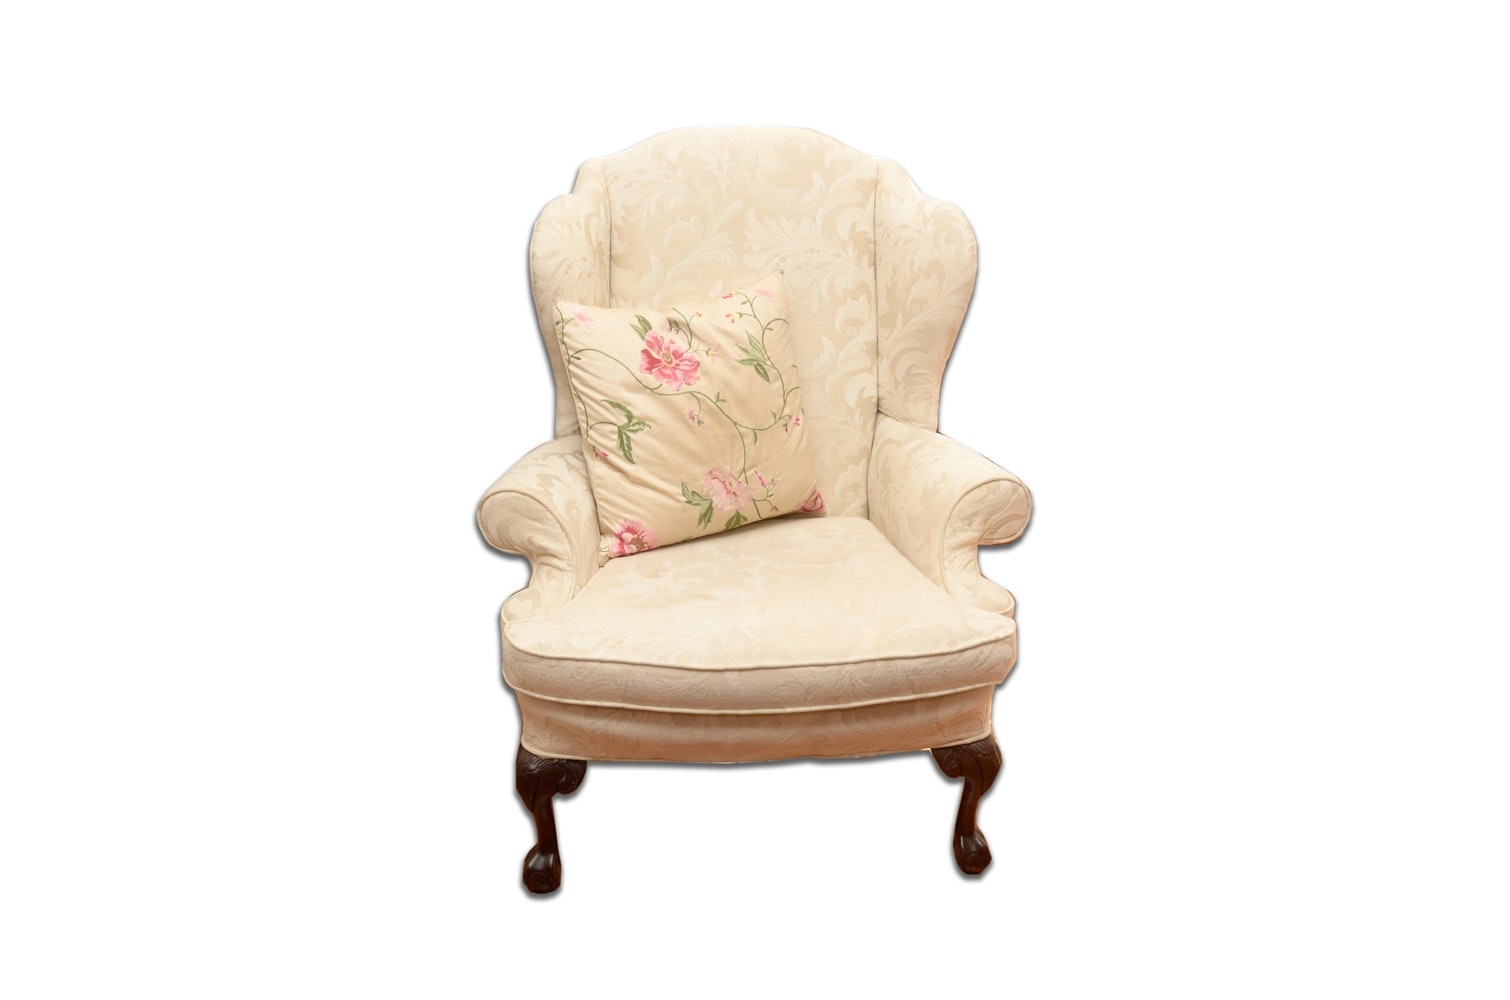 Queen Anne Style Wingback Chair by Paul Robert